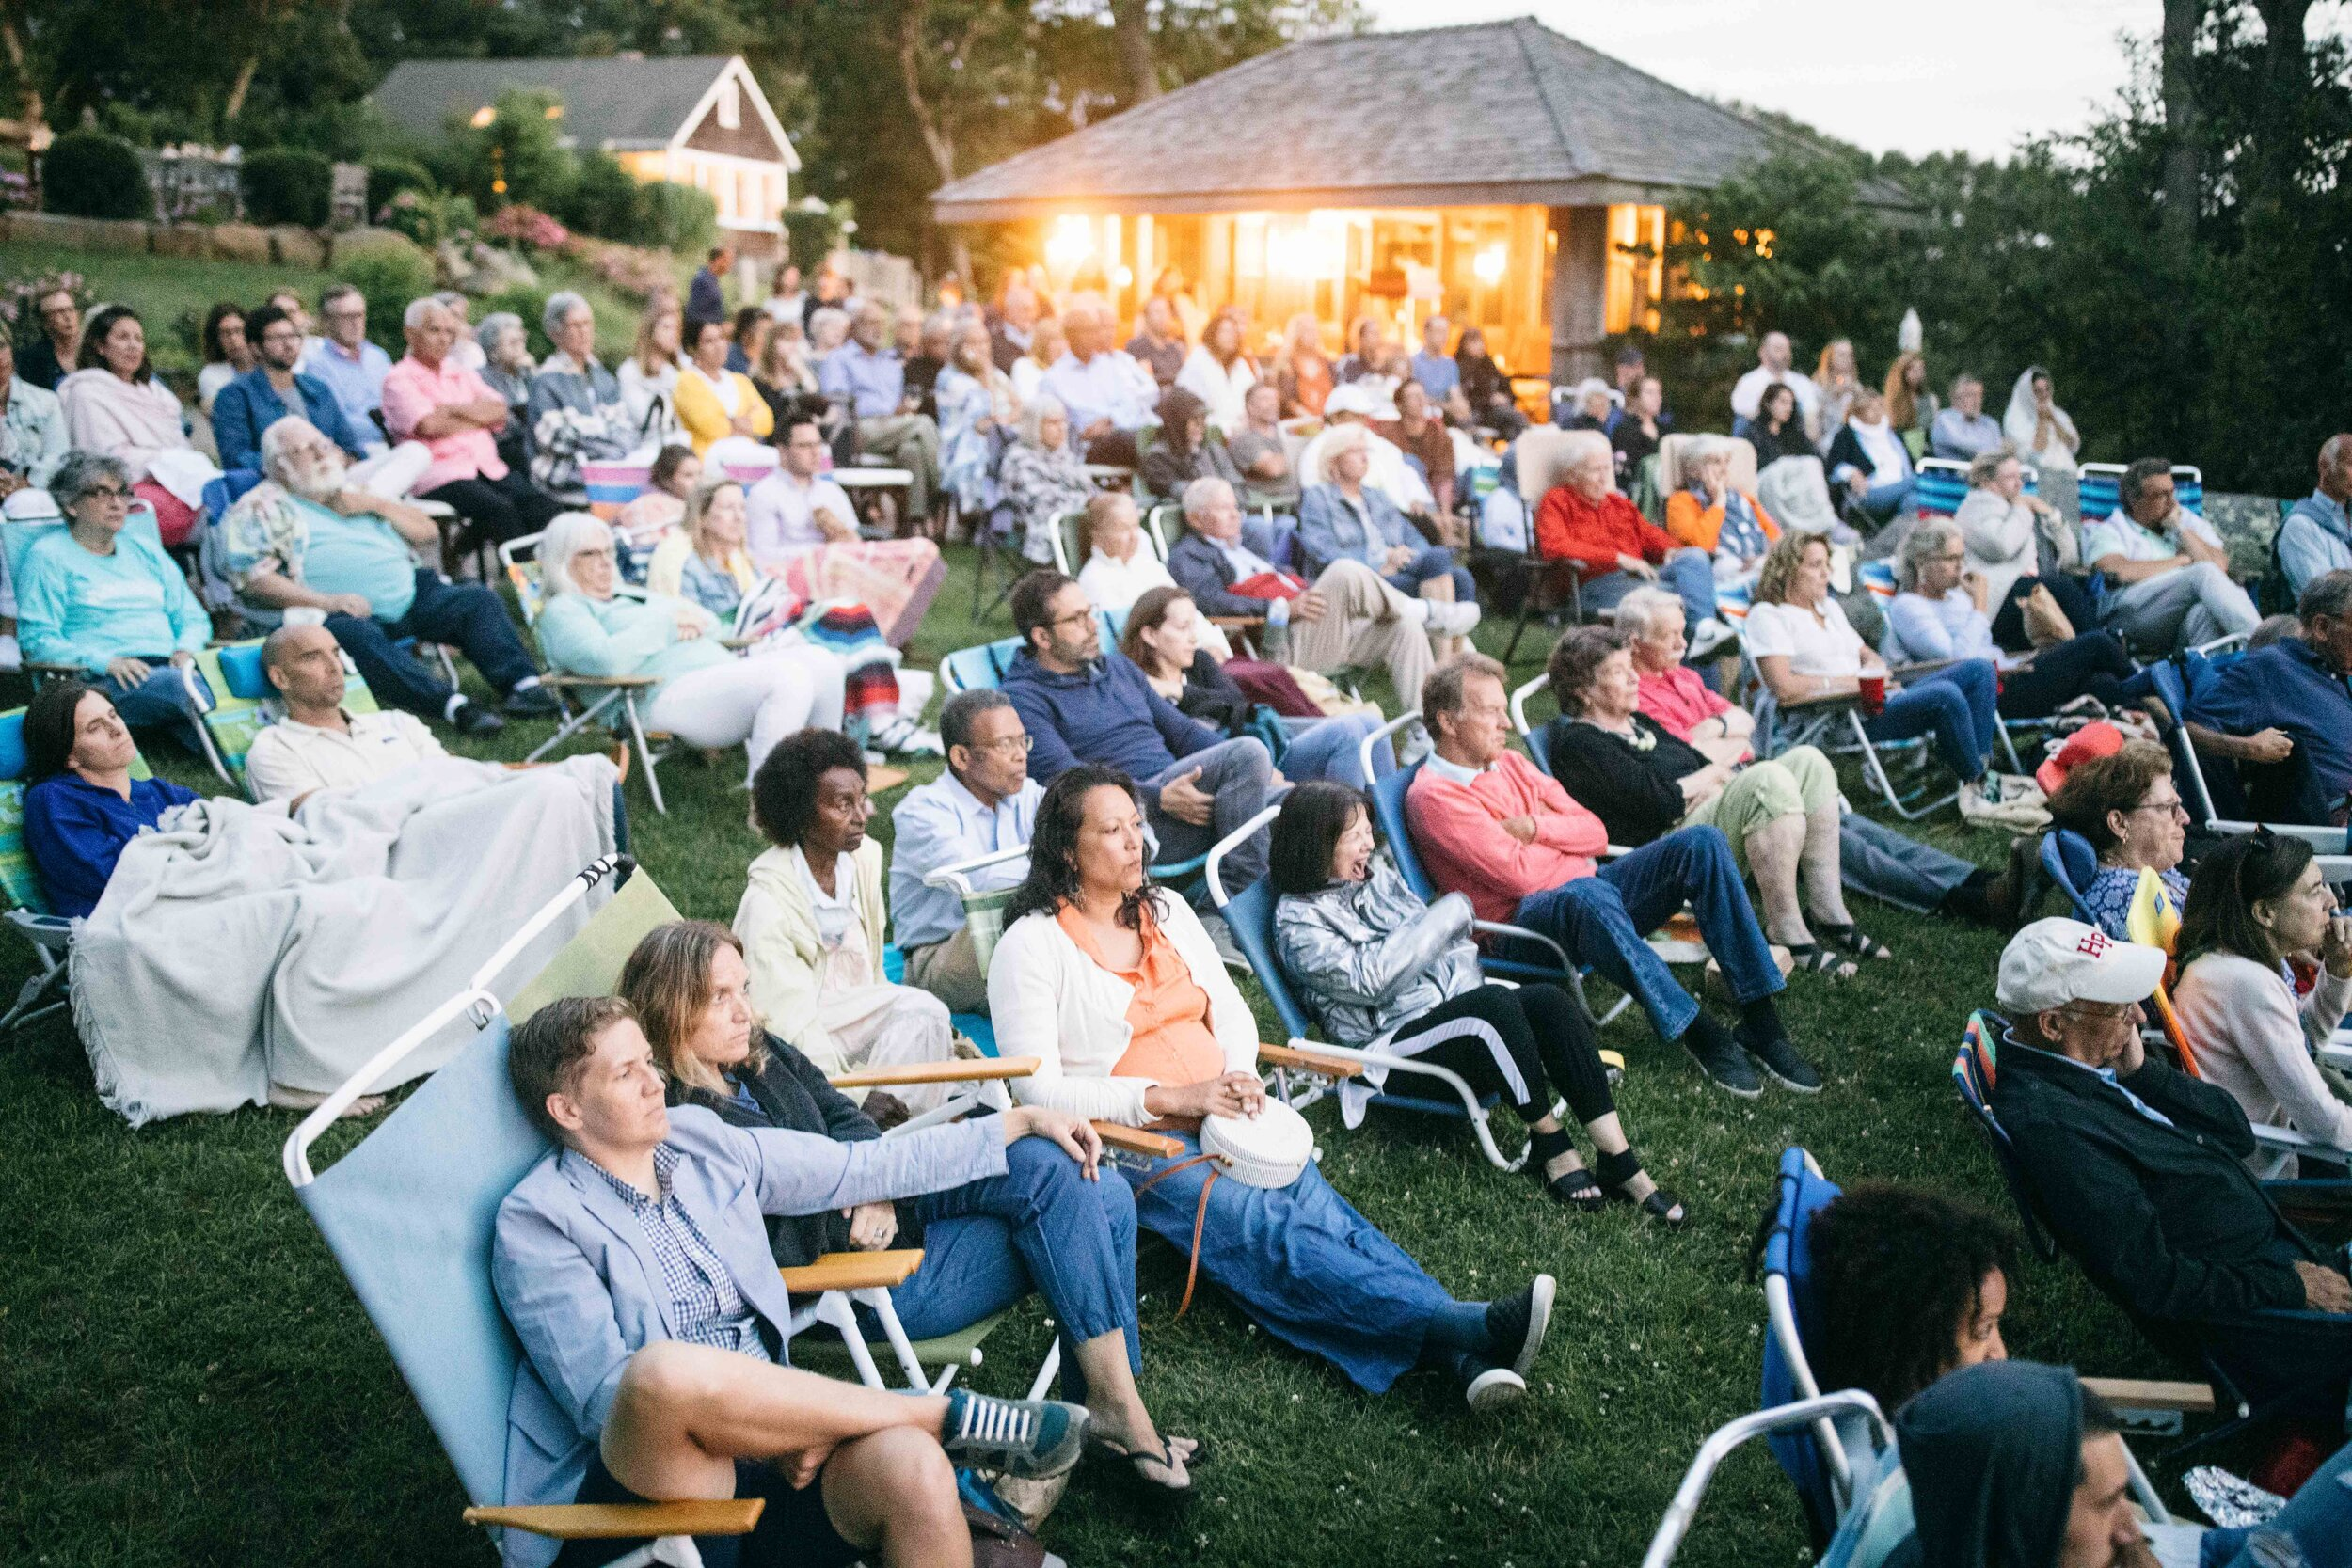 RECONSTRUCTION outdoor presentation by Henry Louis Gates, Jr., at the Beach Plum Inn. Photo by Reece Robinson.